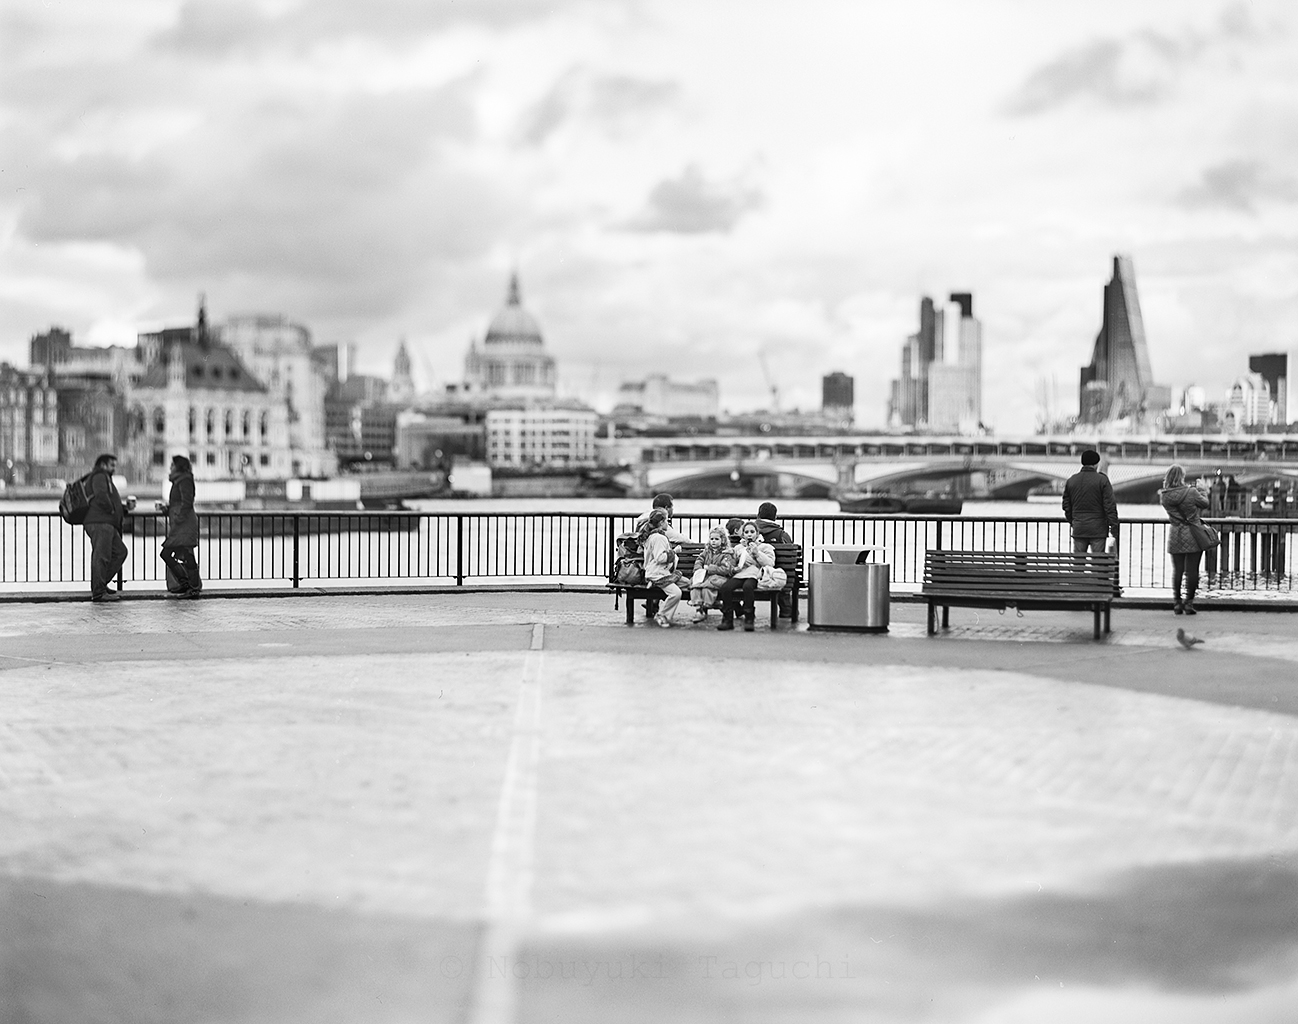 London by 5x4 (4x5) Large Format with Aero Ektar - Photo 1063